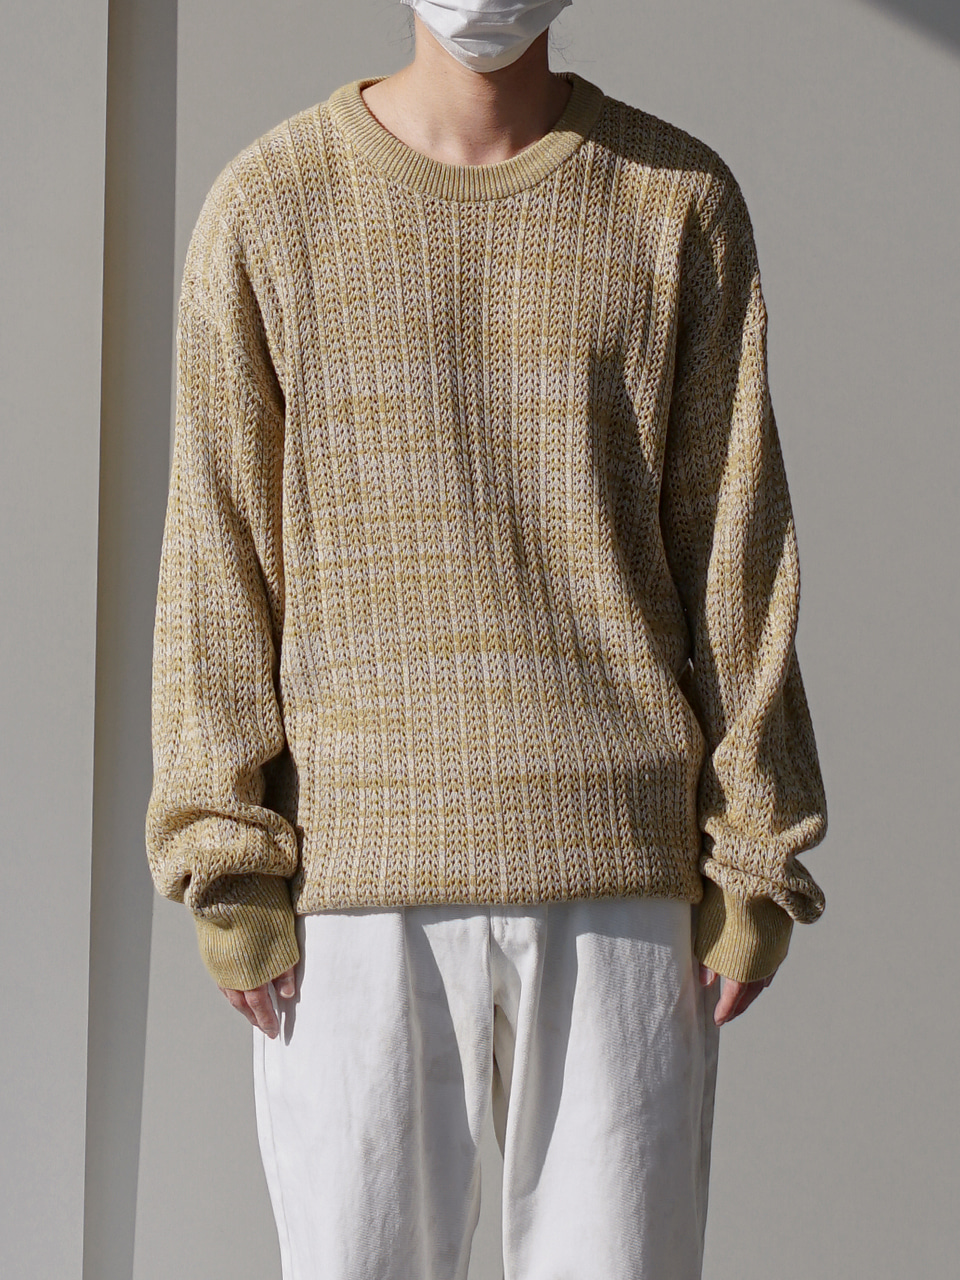 Timbale Knit (3color)